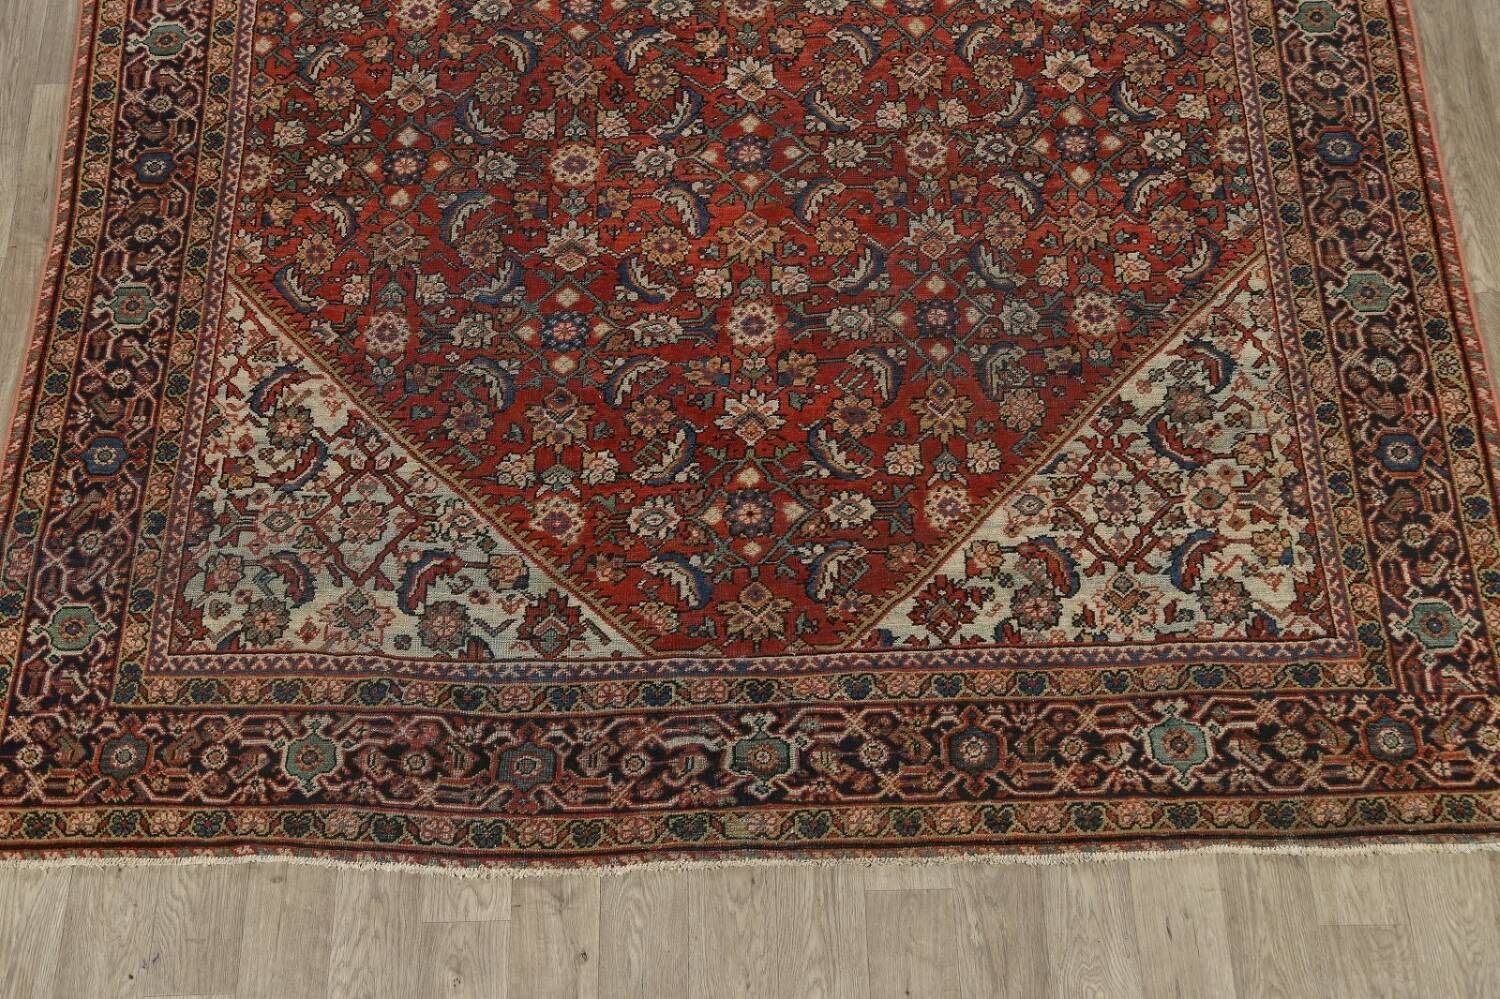 Pre-1900 Vegetable Dye Sultanabad Persian Area Rug 9x11 image 8